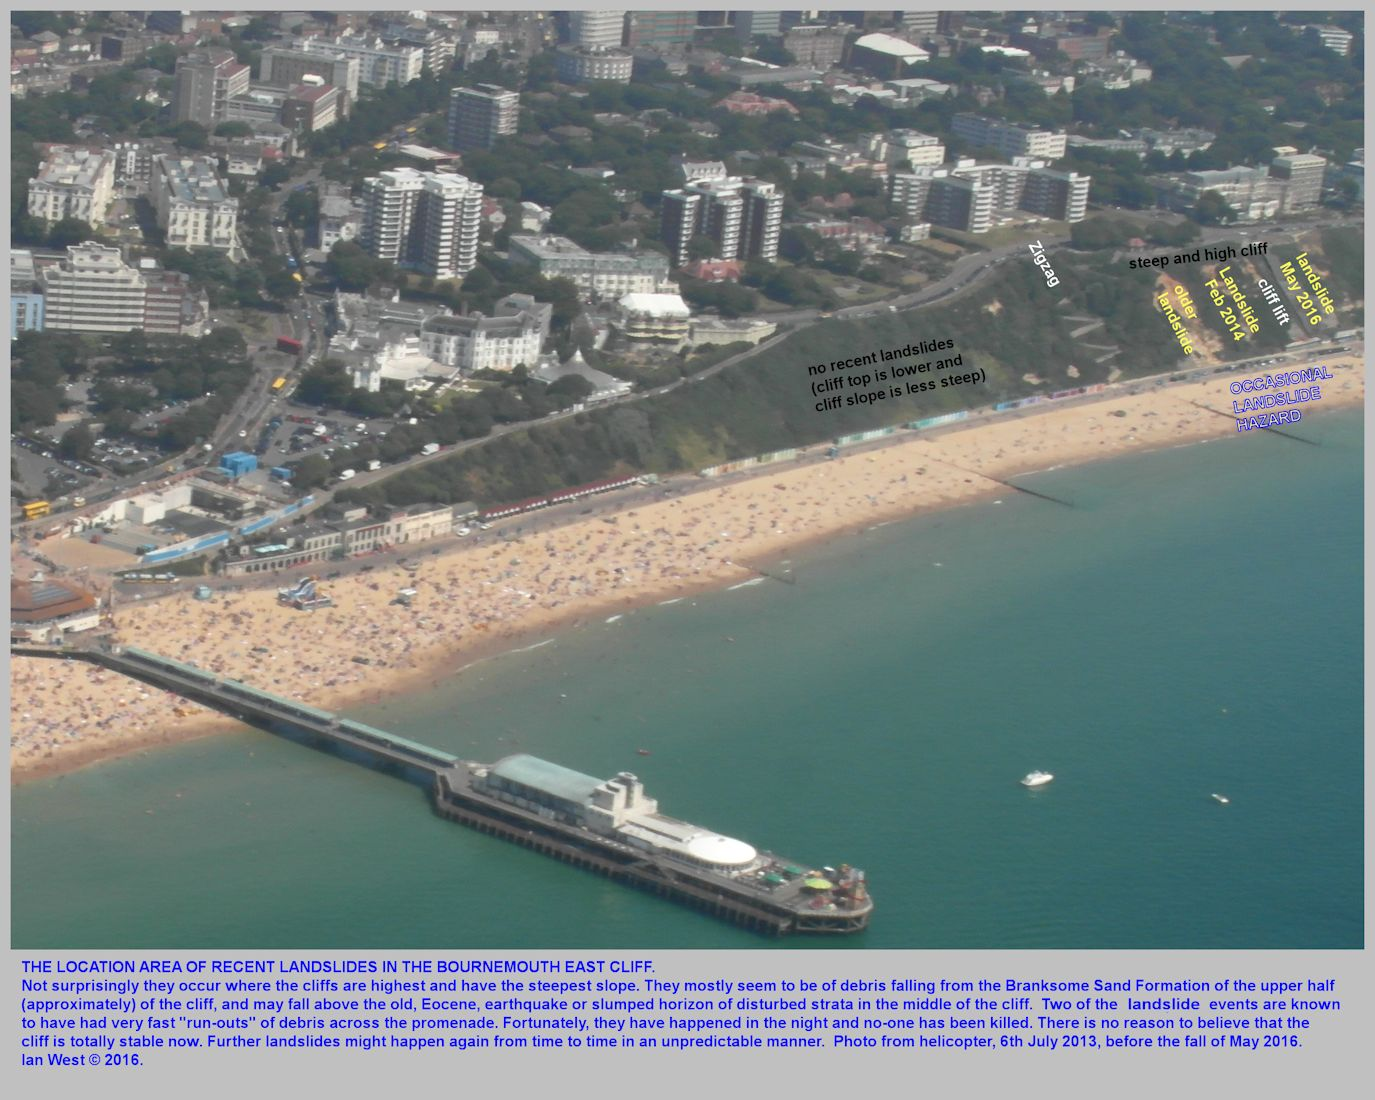 The coast just east of Bournemouth Pier, Dorset, seen from a helicopter, and showing the location of cliff falls in a specific area, near the estern Cliff Lift, photograph: July 2013